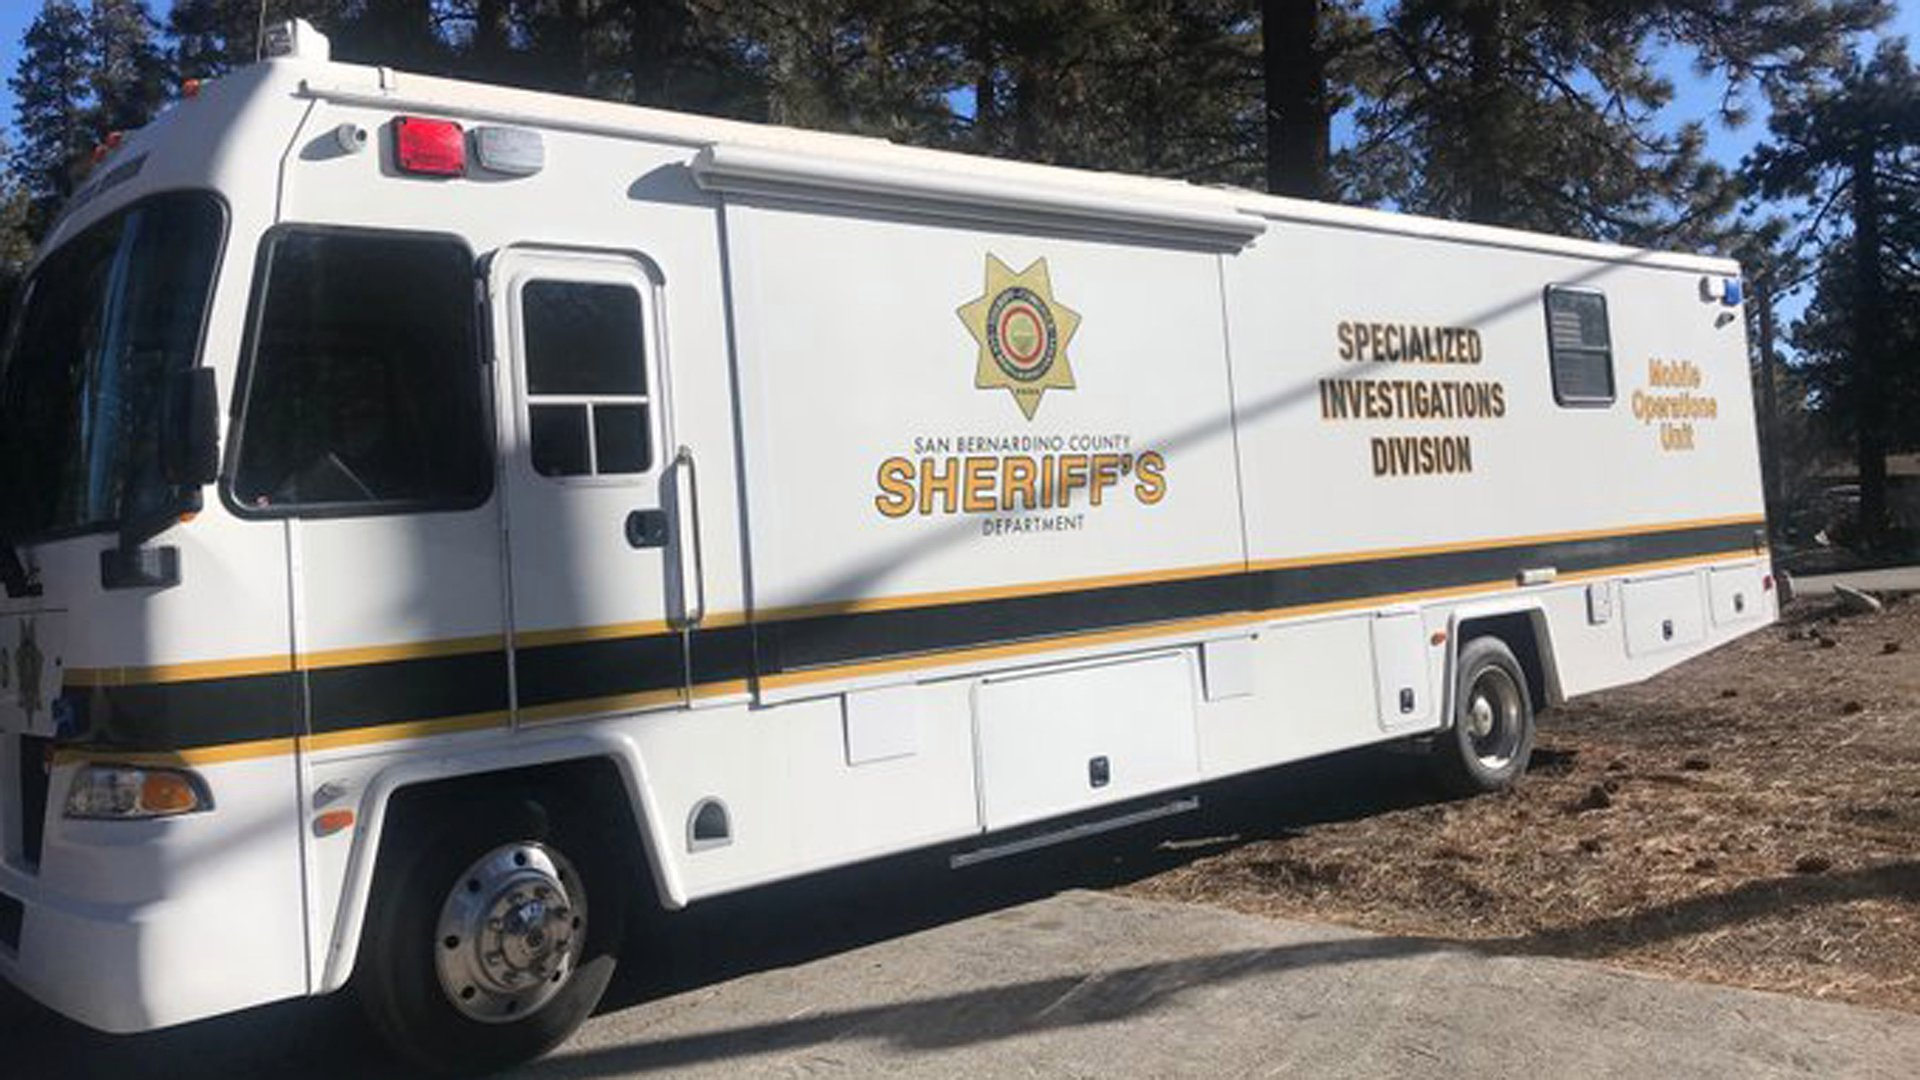 Sheriff's homicide detectives responded to Fawnskin to investigate the deaths of a man and a woman on Feb. 3, 2020. (Credit: San Bernardino County Sheriff's Department)